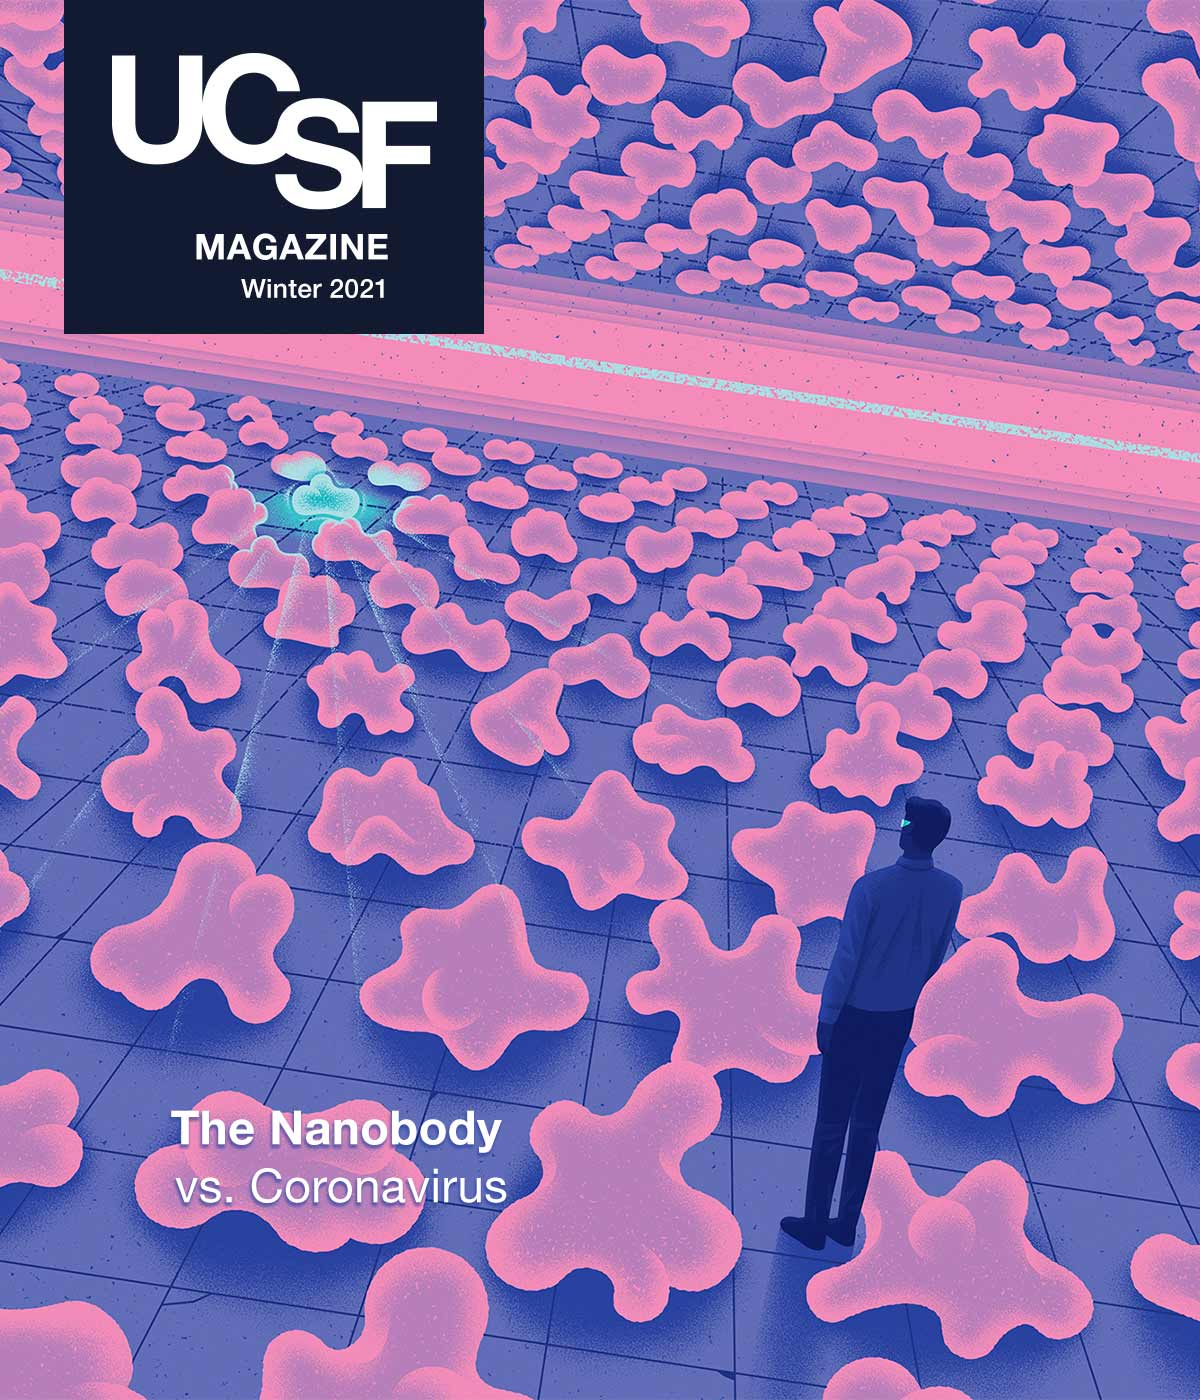 UCSF Magazine Winter Edition Cover showing a man standing in an endless landscape of germs with one highlighted as different